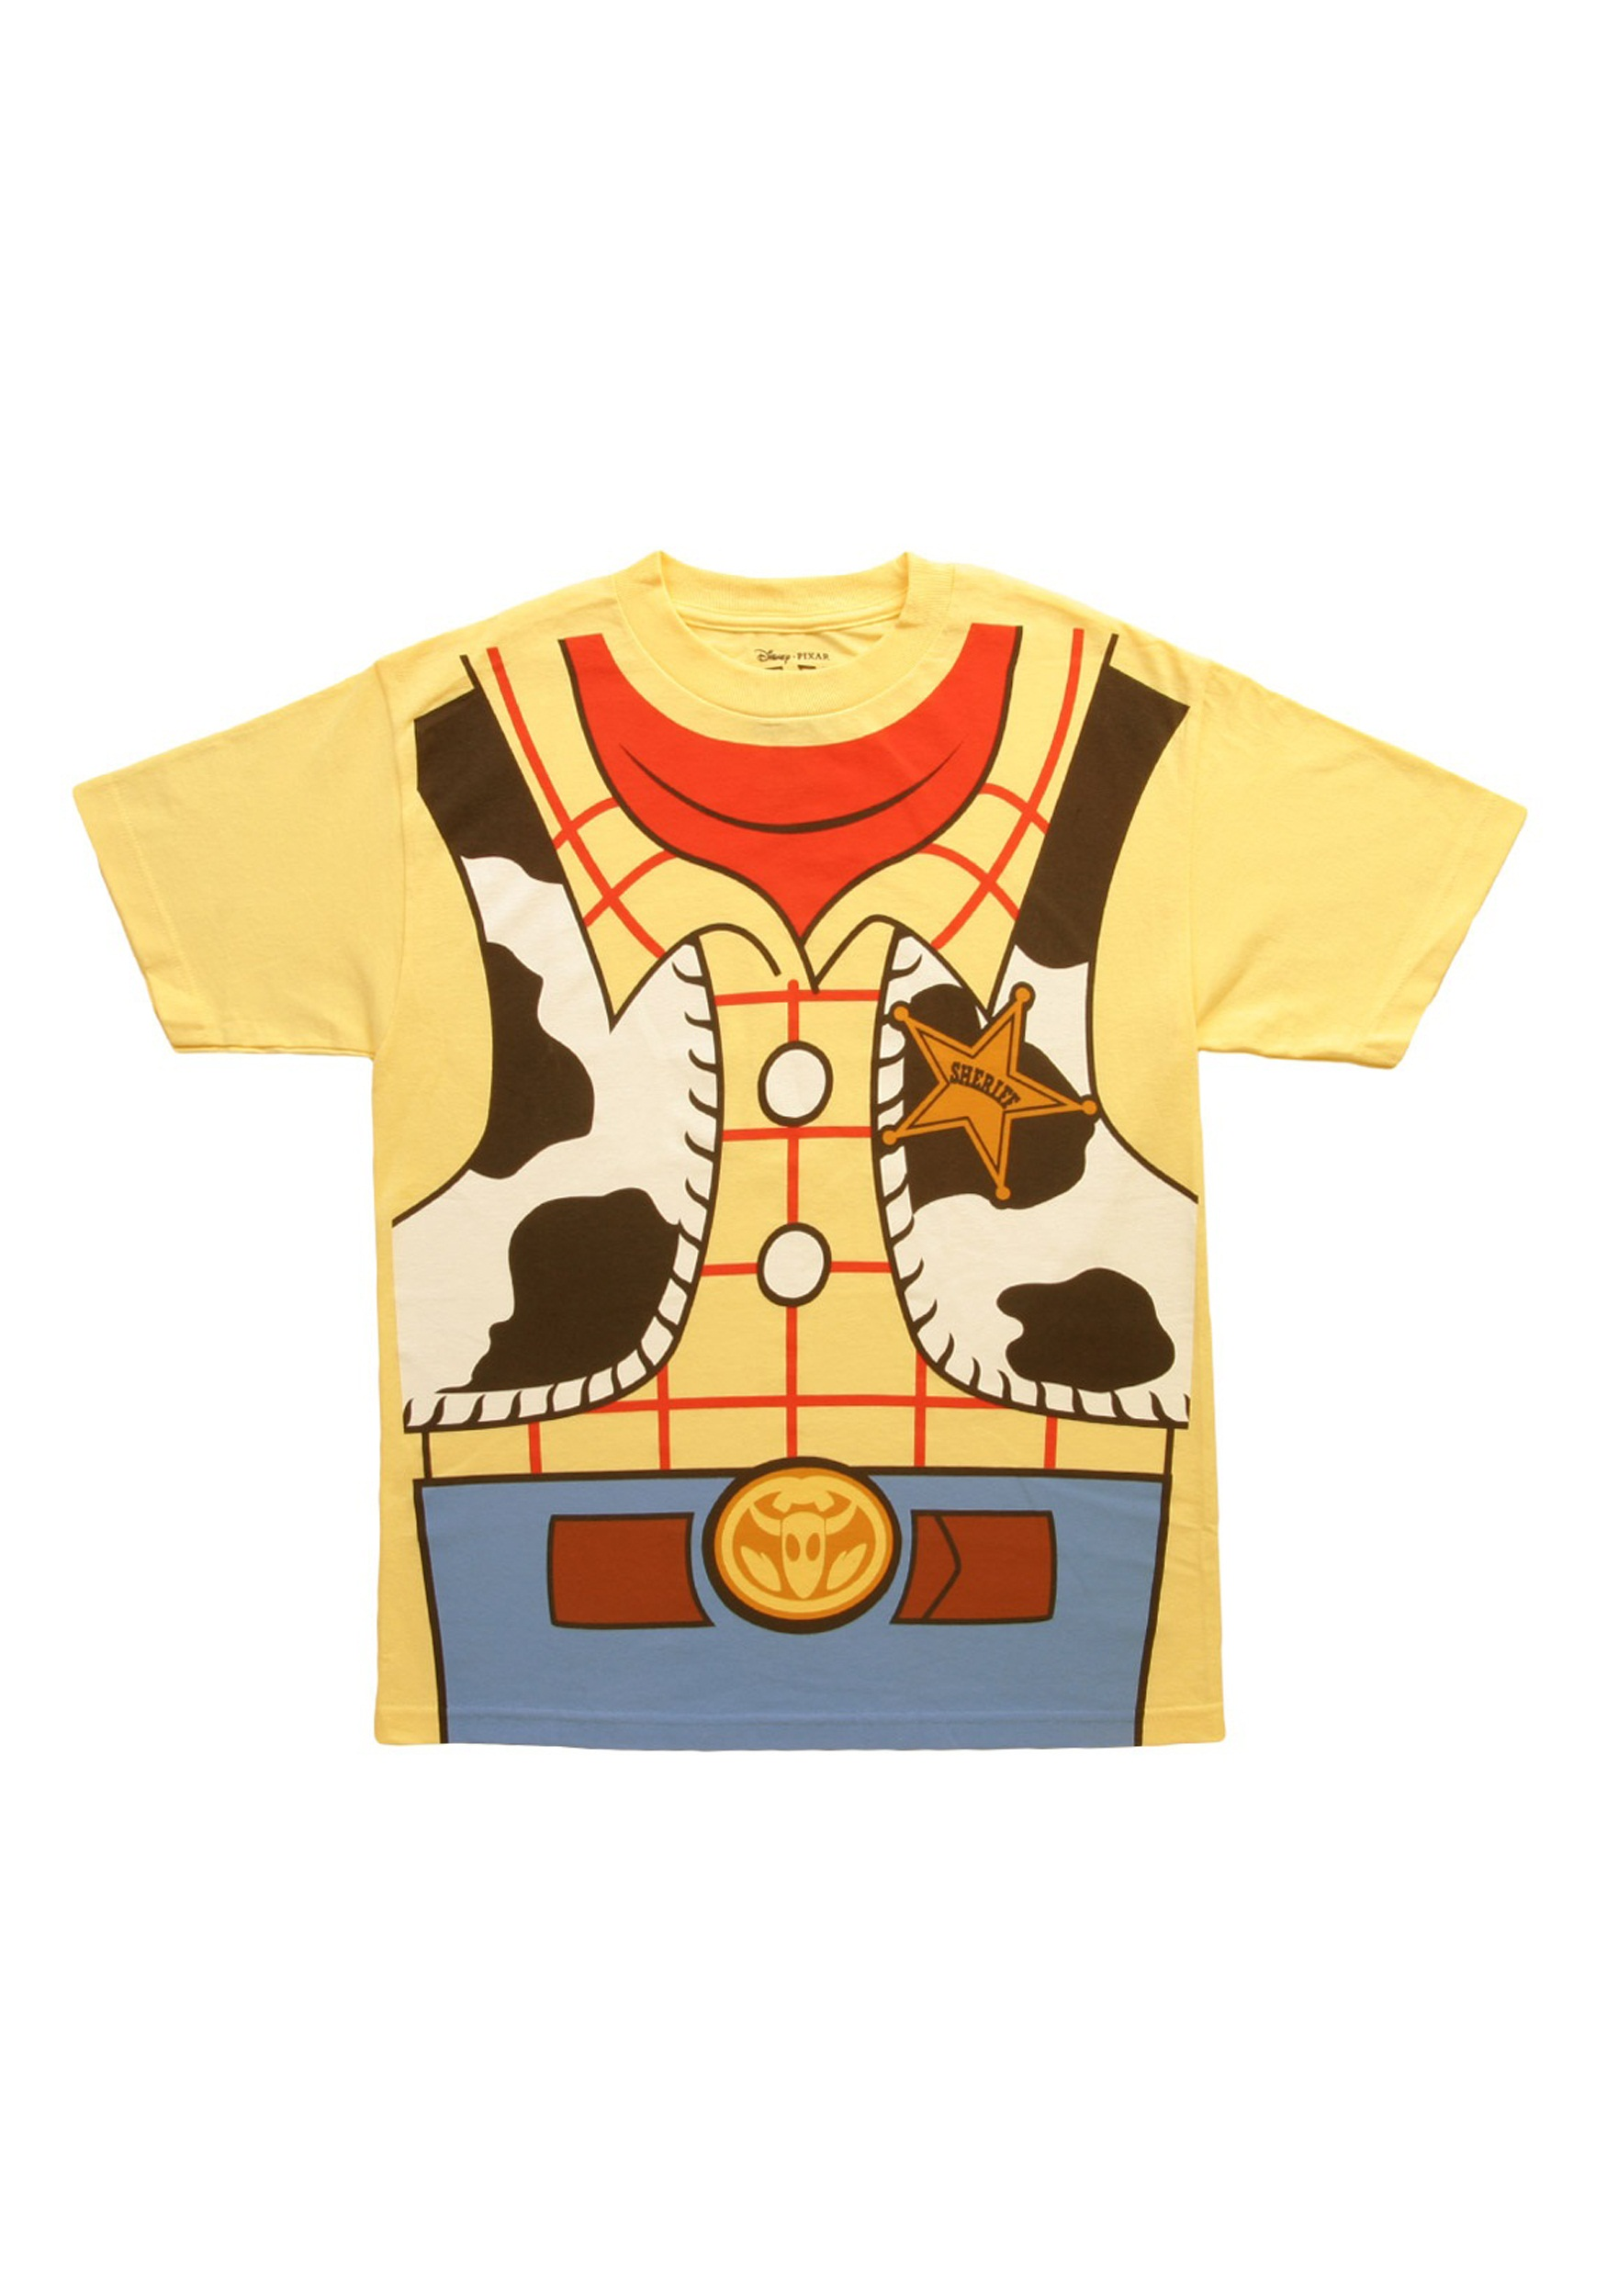 Toy Story Woody Cowboy Costume Shirt